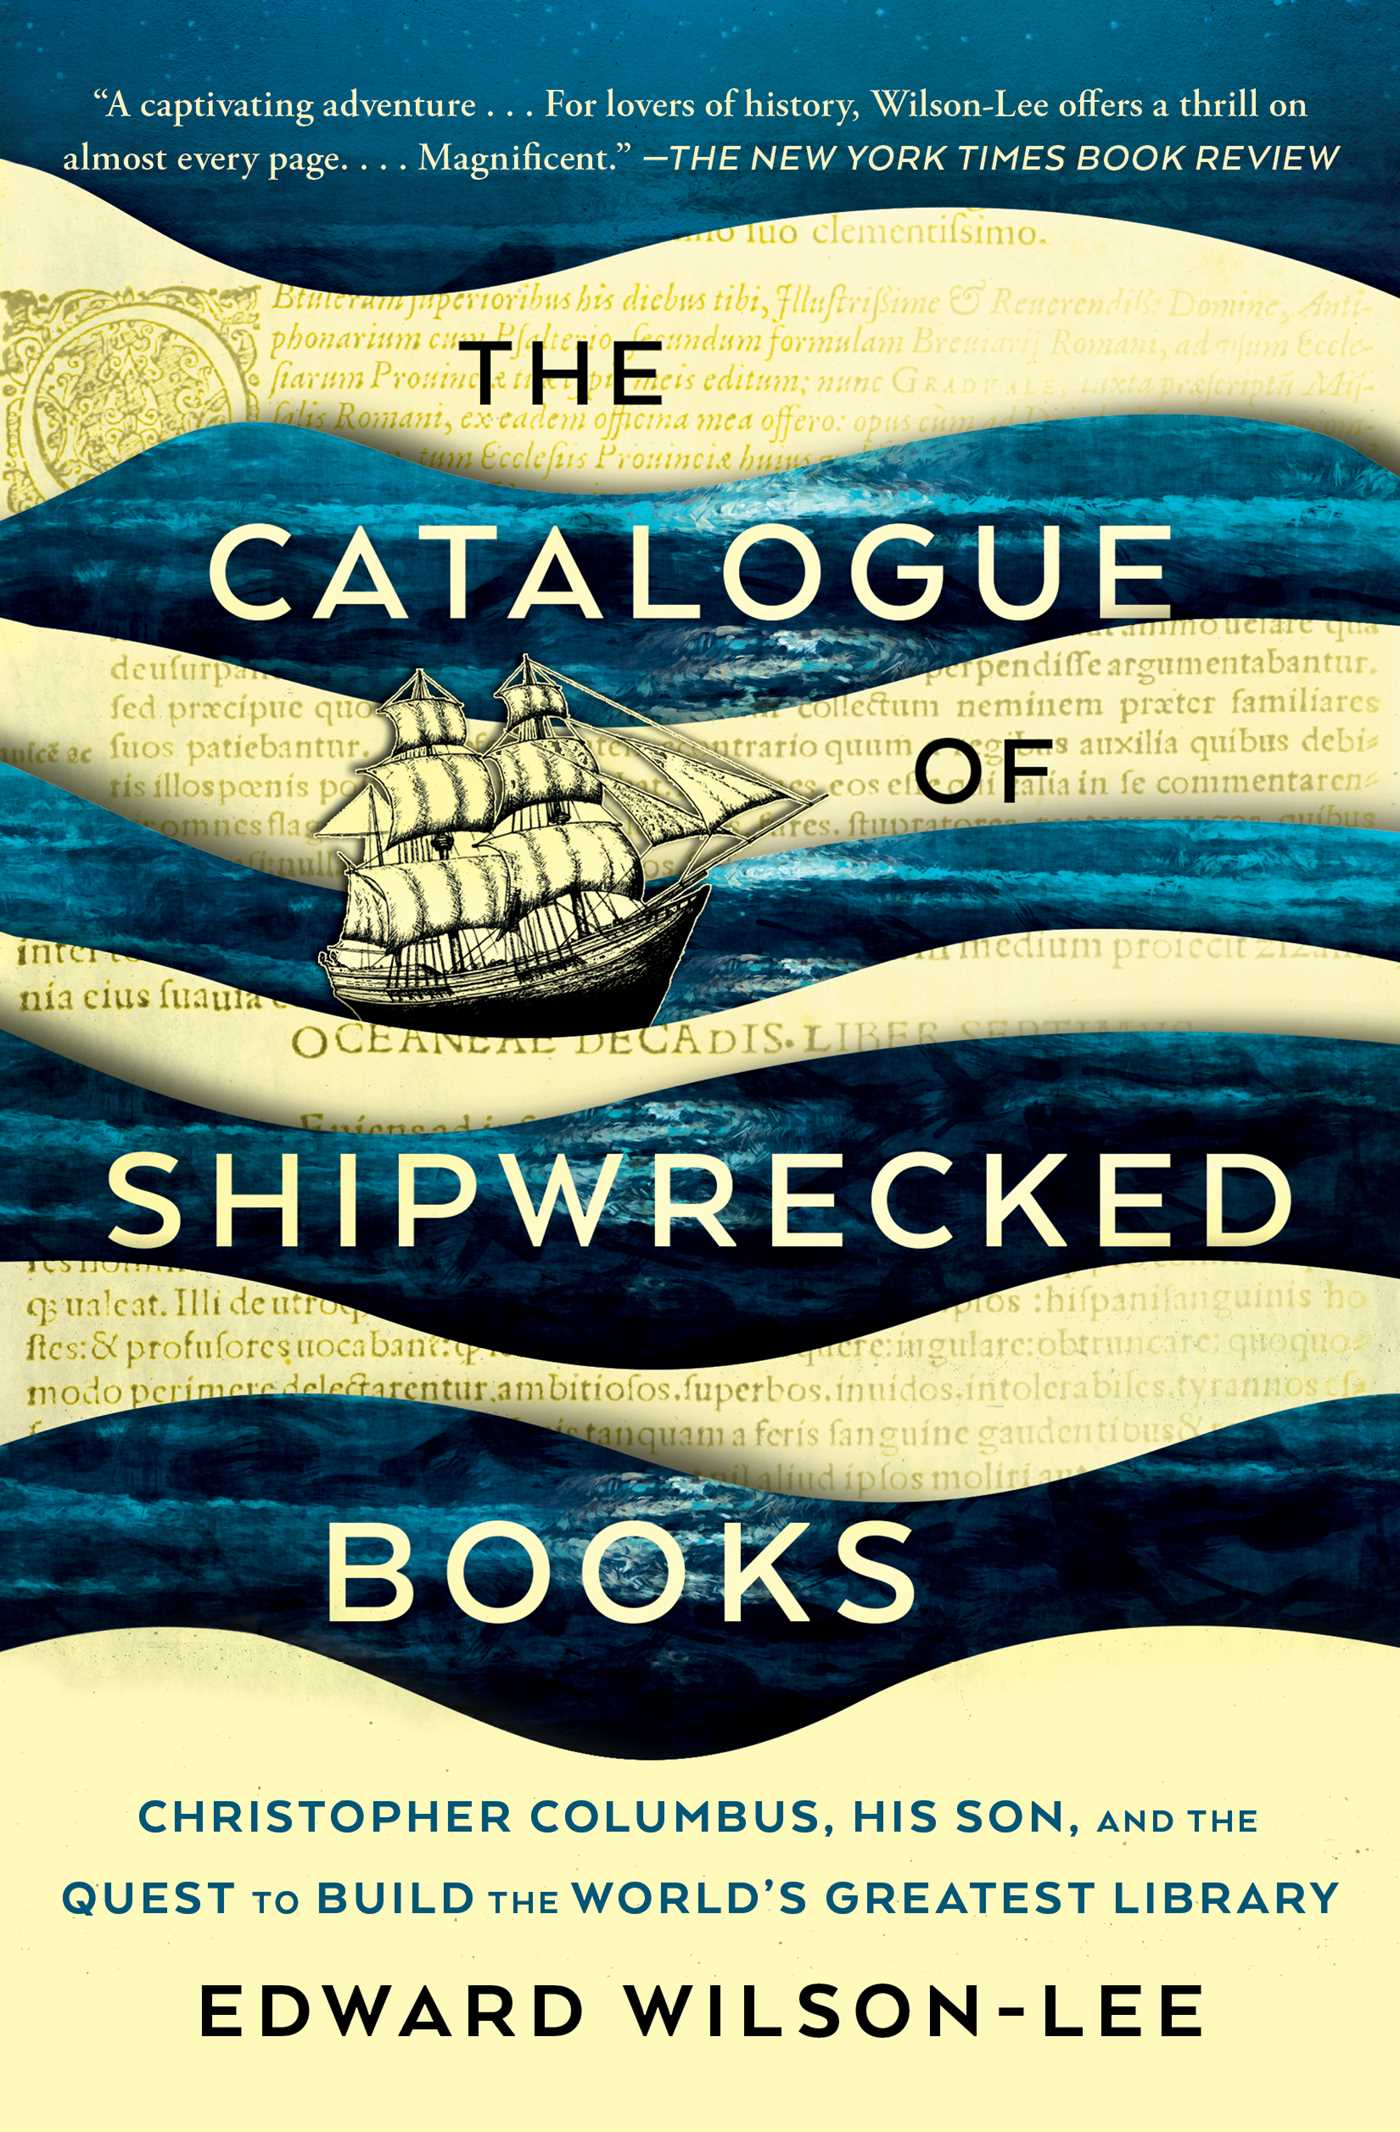 The Catalogue of Shipwrecked Books Christopher Columbus, His Son, and the Quest to Build the World's Greatest Library